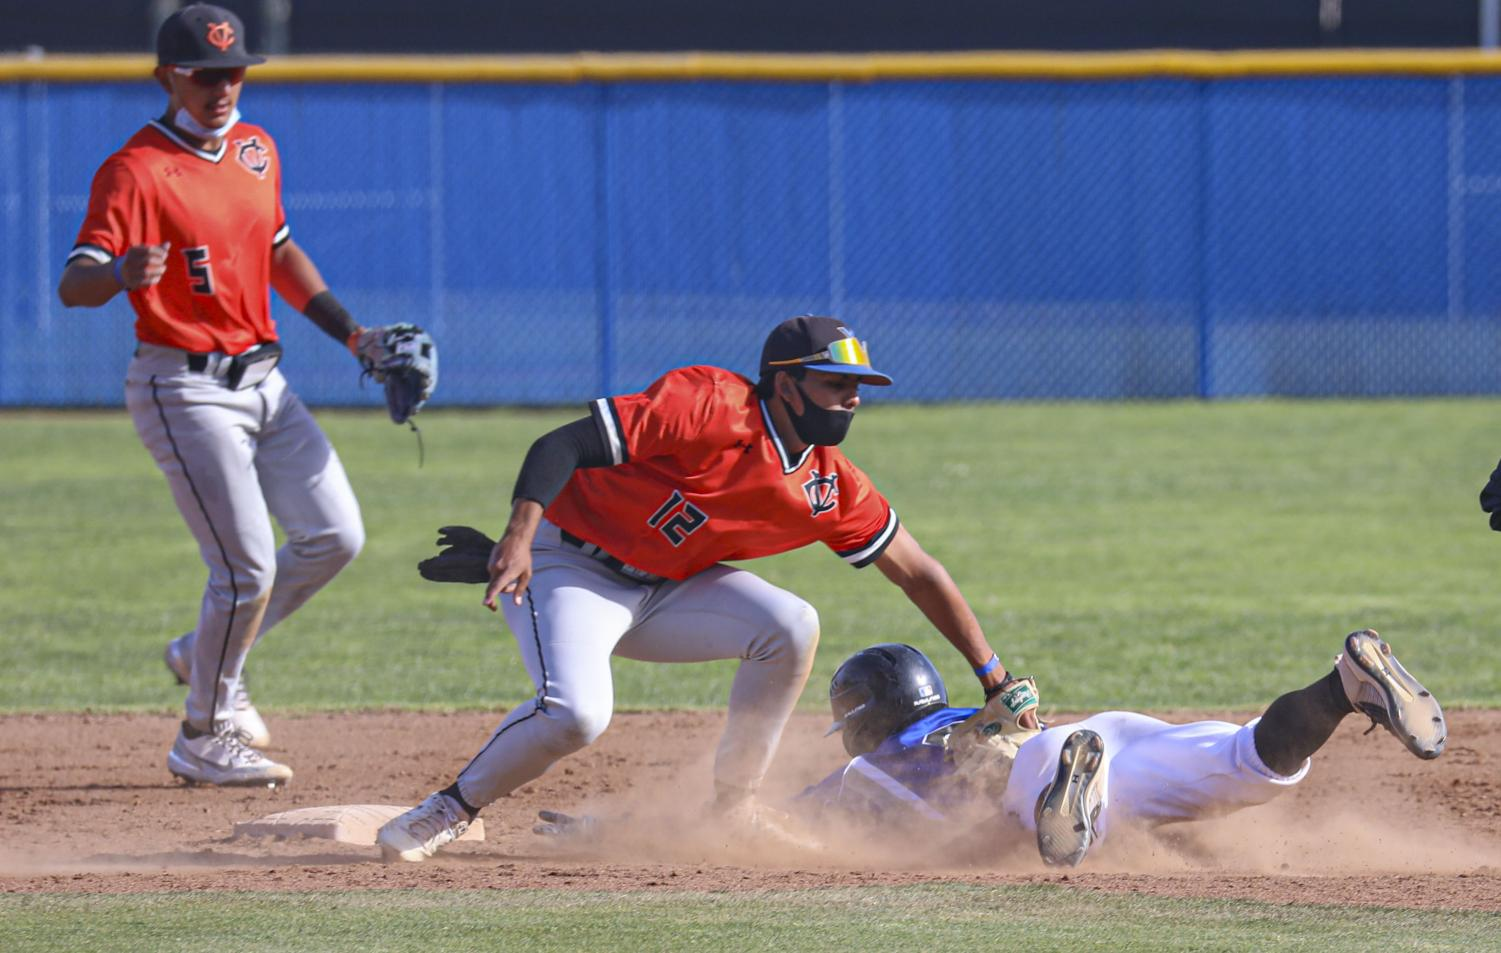 Moorpark Raider Nate Martinez attempts to slide into second base as Ventura Pirate Chase McBean tags him out during the second game of the doubleheader on Thursday, April 15, 2021 during the home against Ventura College at Moorpark, CA.